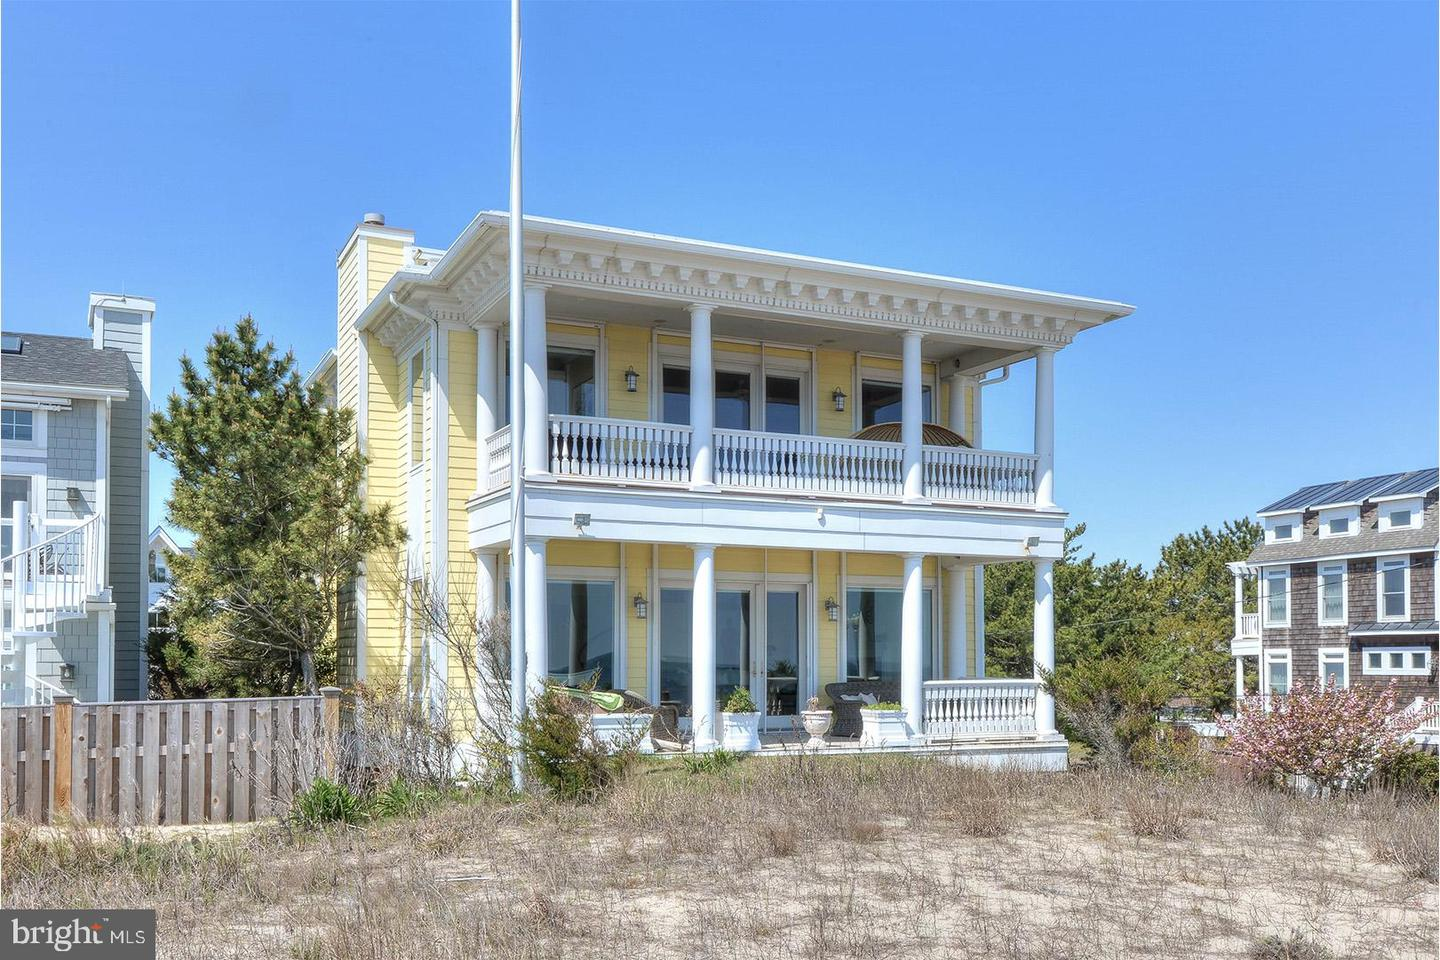 DESU159700-304100429349-2020-05-01-17-16-50 4 Prospect St | Rehoboth Beach, DE Real Estate For Sale | MLS# Desu159700  - Lee Ann Group